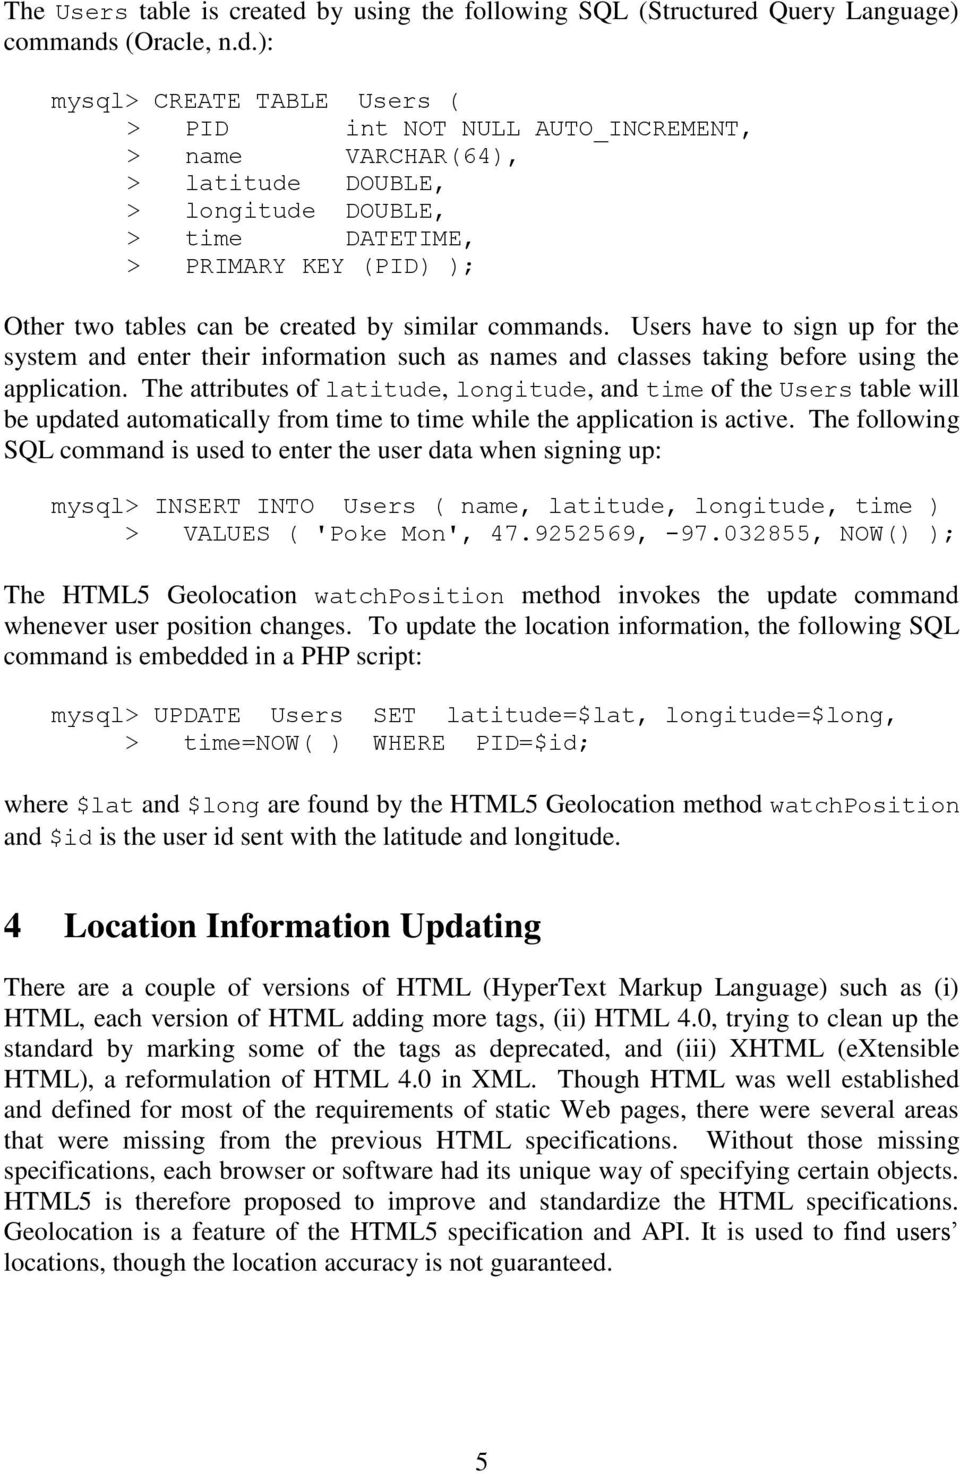 Location-Based Services Using HTML5 Geolocation and Google